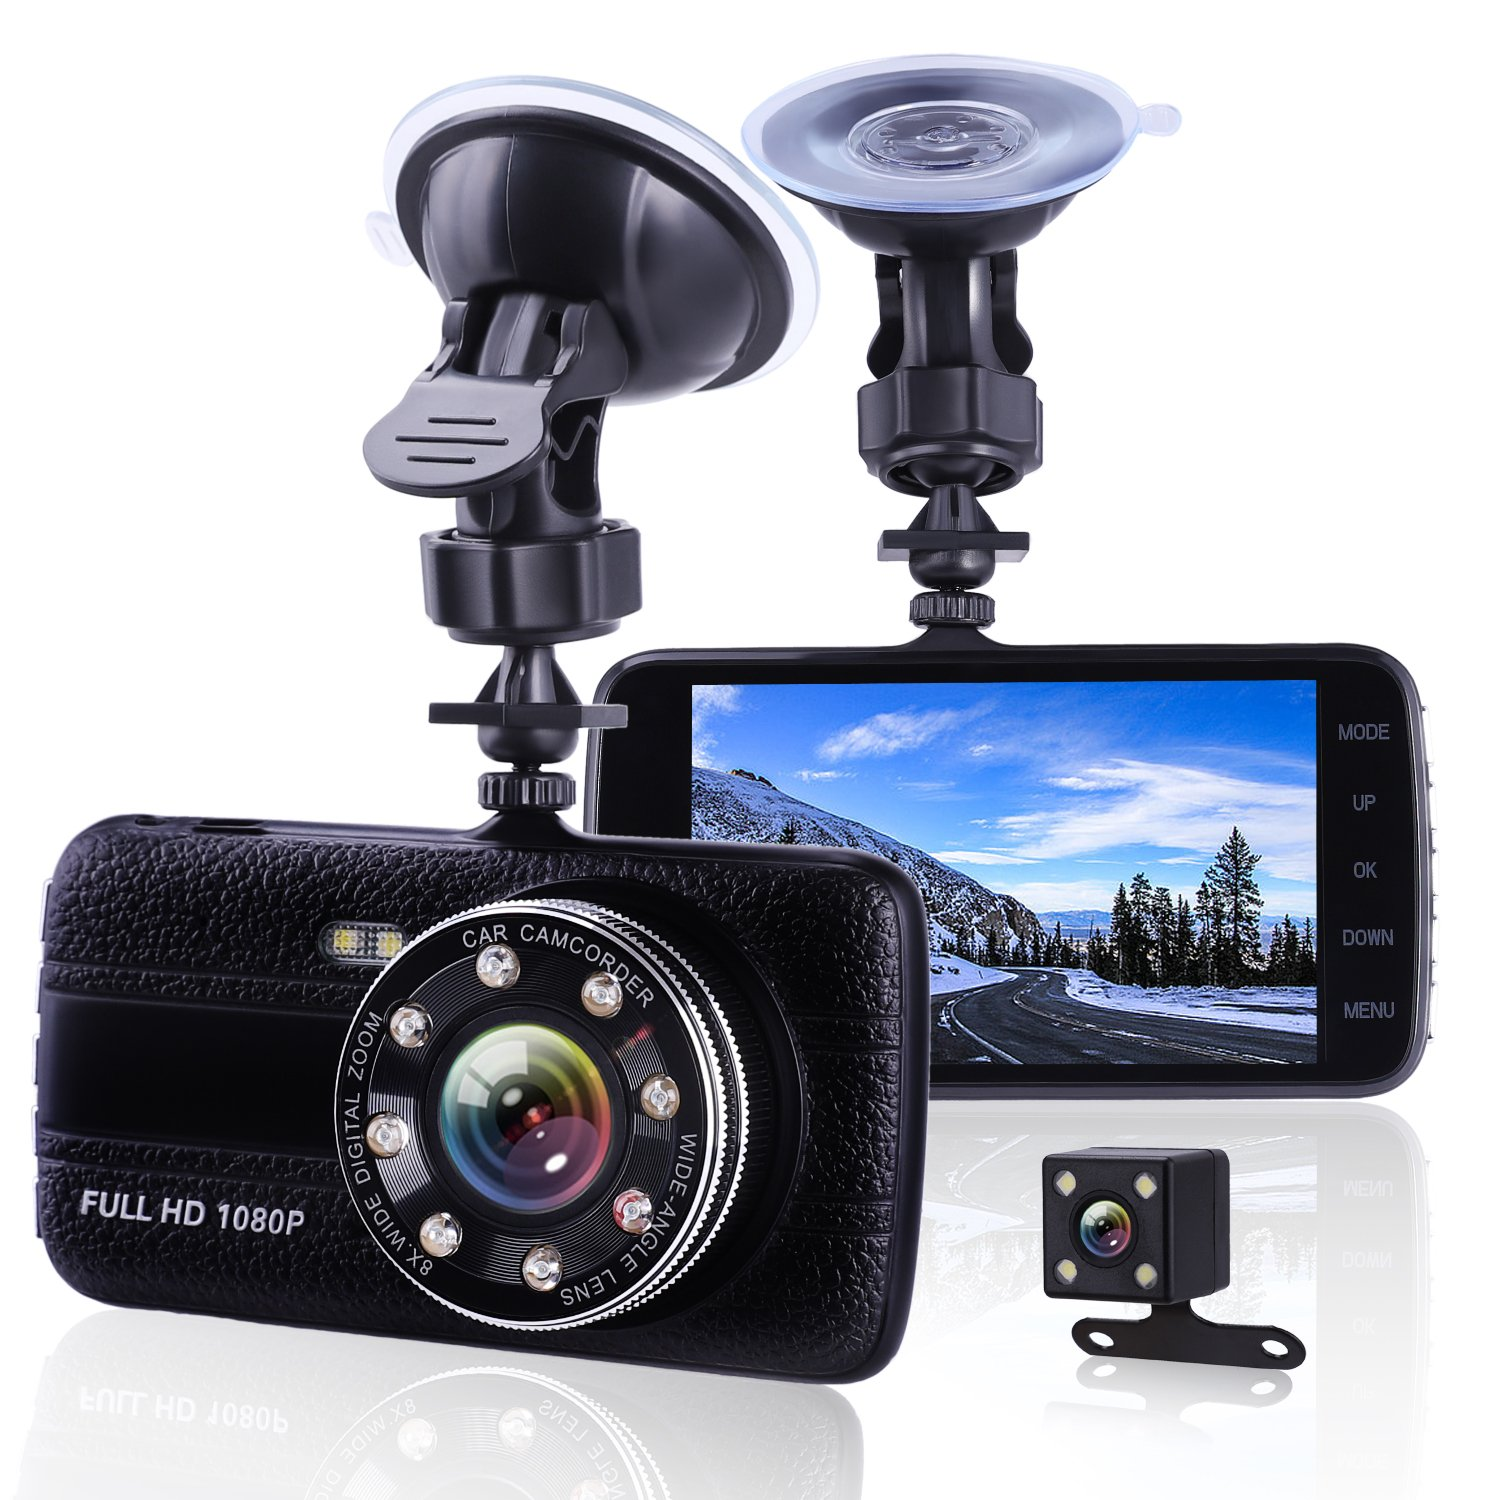 Car Camera Dash Cam Front and Rear Dual Camera, Superior Night Vision 1080P HD Dashcam,4 Inch Large IPS Screen Car Dashboard Camera, Car Video Recorder With G-sensor, Loop Recording, Motion Detection